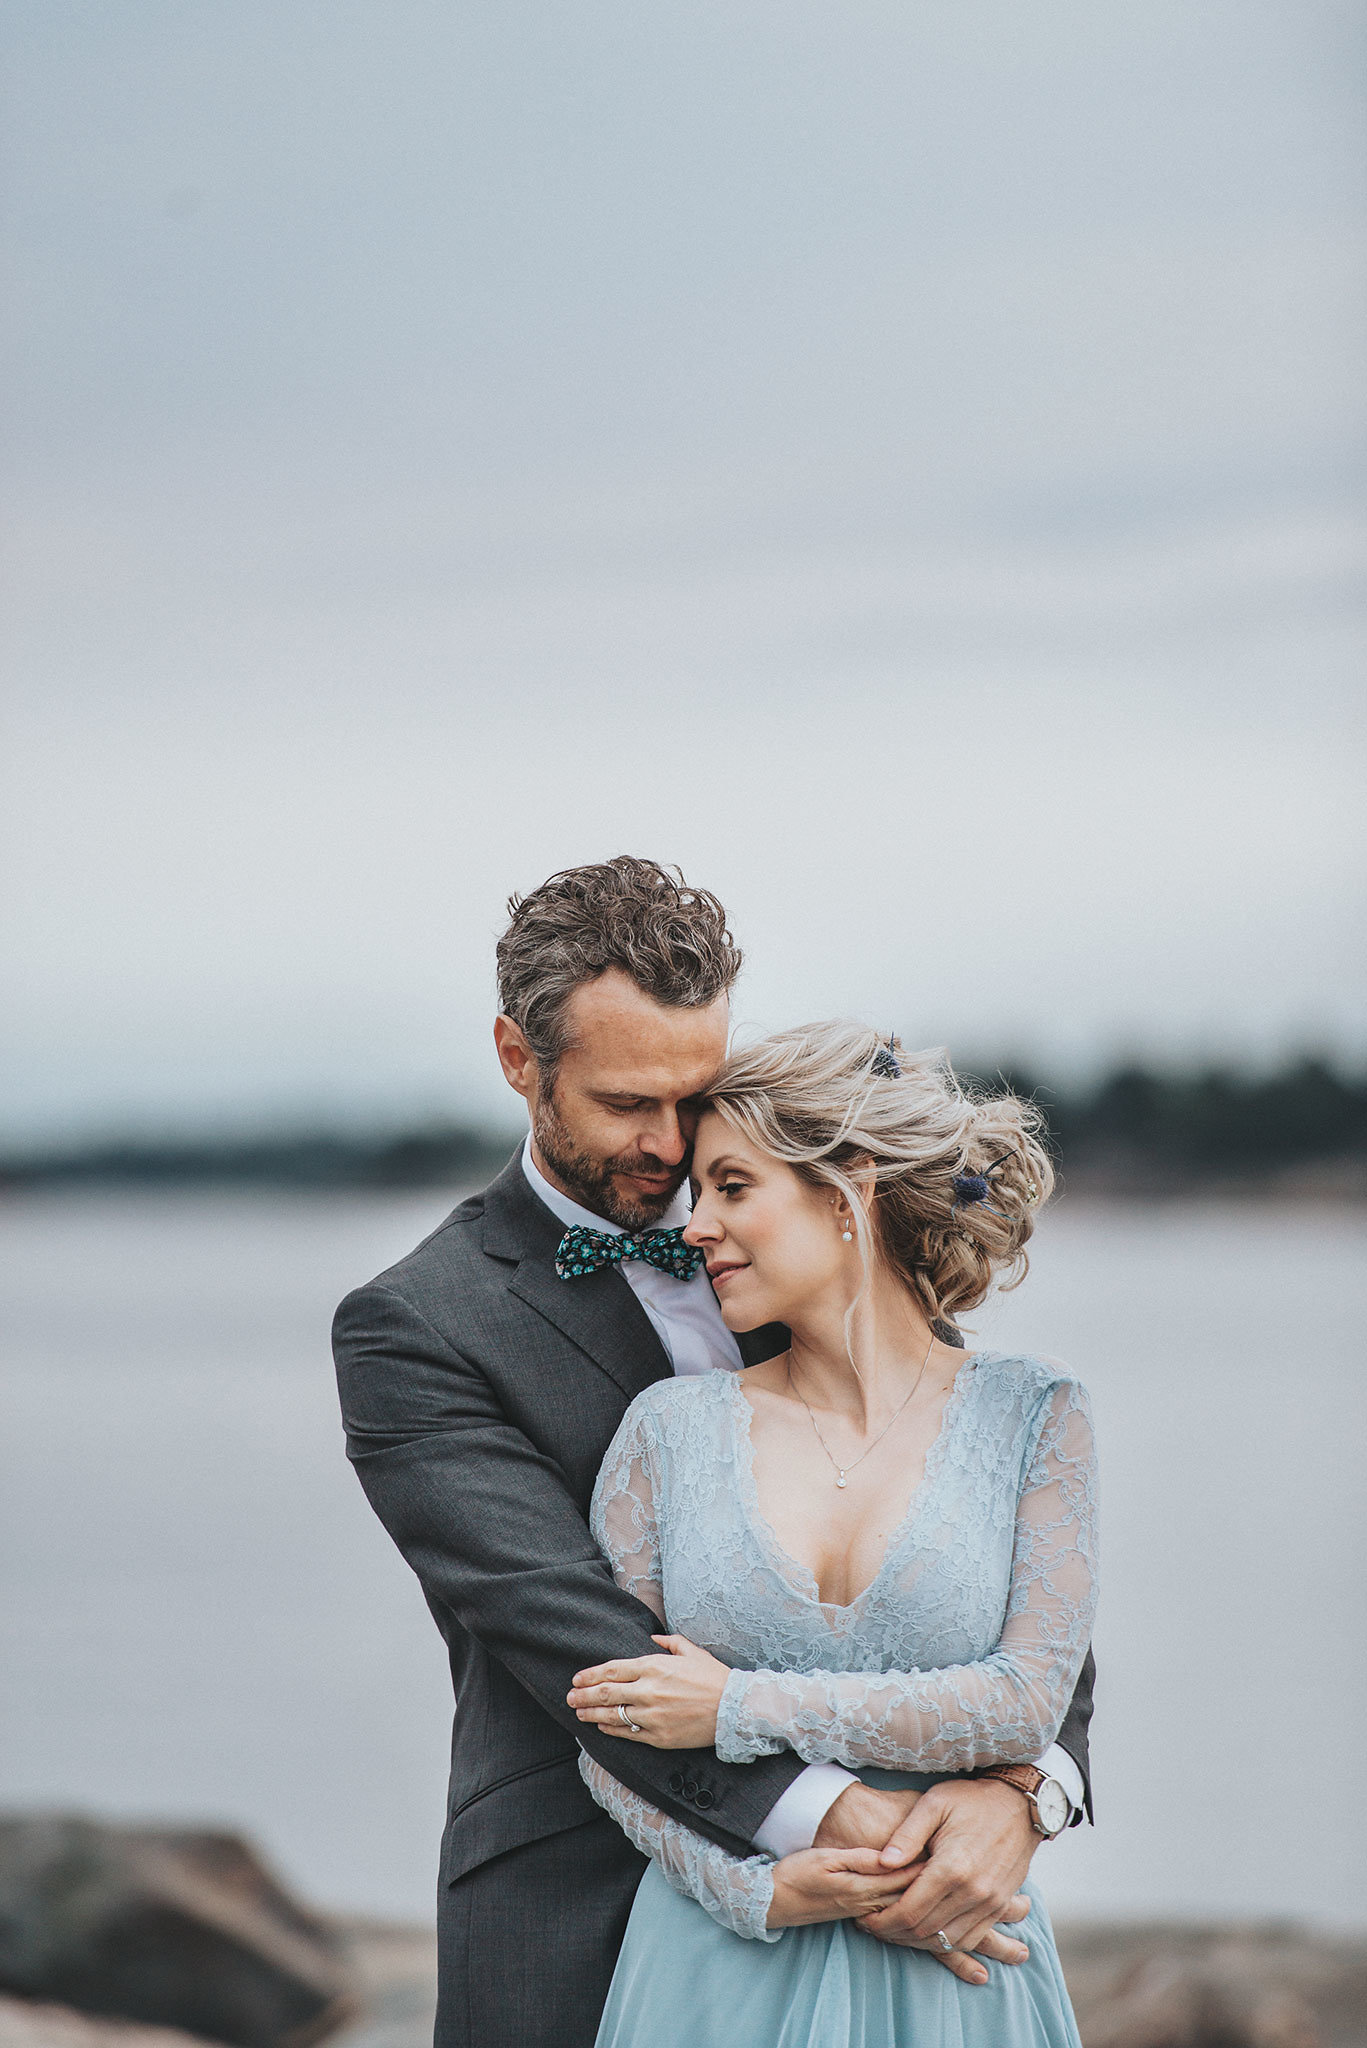 Stormy Scandinavian Wedding Inspiration Featuring a Dramatic Blue Gown | Snowflake Photo 40